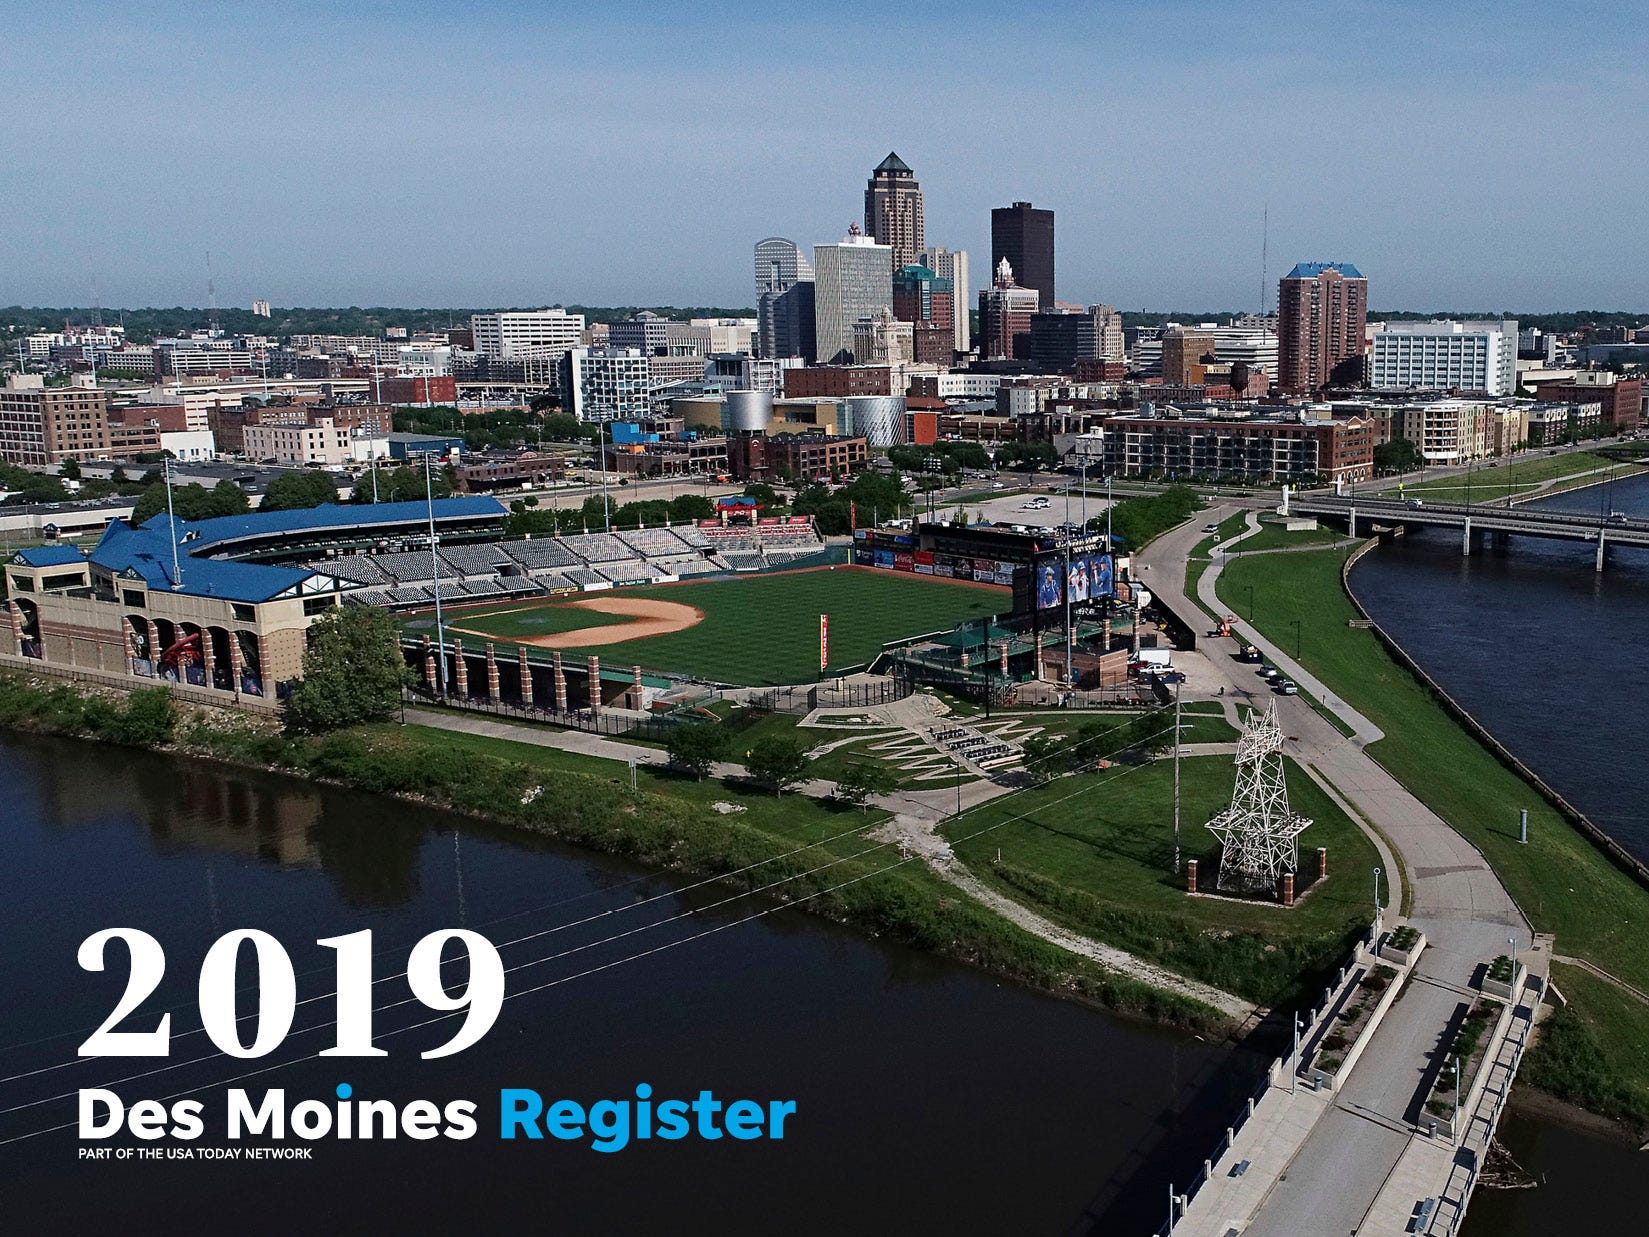 "The cover of the 2019 Des Moines Register photo calendar features a beautiful drone shot of downtown Des Moines. The calendar is available for $18 at <a href=""https://shopdmregister.com/collections/photo-gifts/products/2019-des-moines-register-photo-calendar?utm_source=desmoinesregister&utm_medium=link&utm_campaign=launch_gallery"" target=""_blank"">ShopDMRegister.com. </a>"